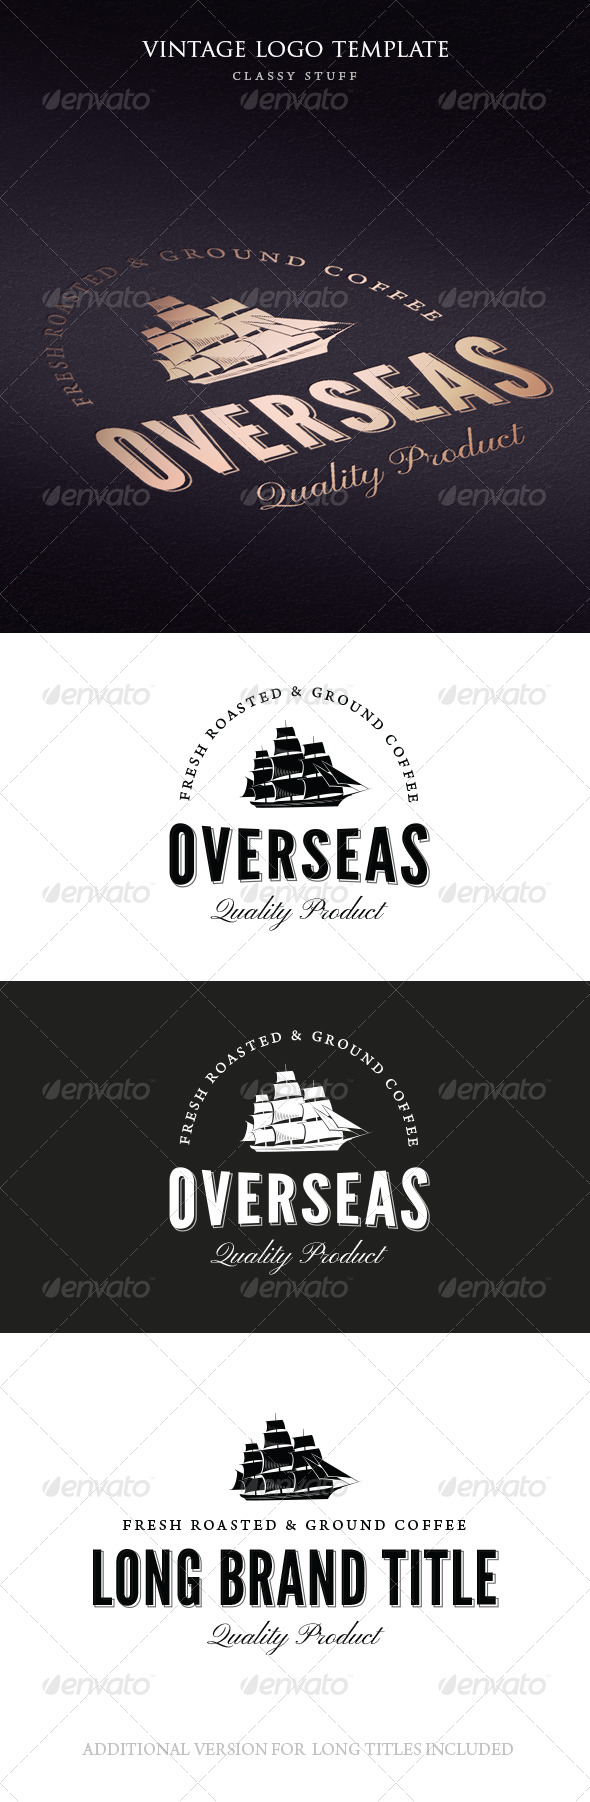 GraphicRiver Vintage Overseas Logo Template 6504714